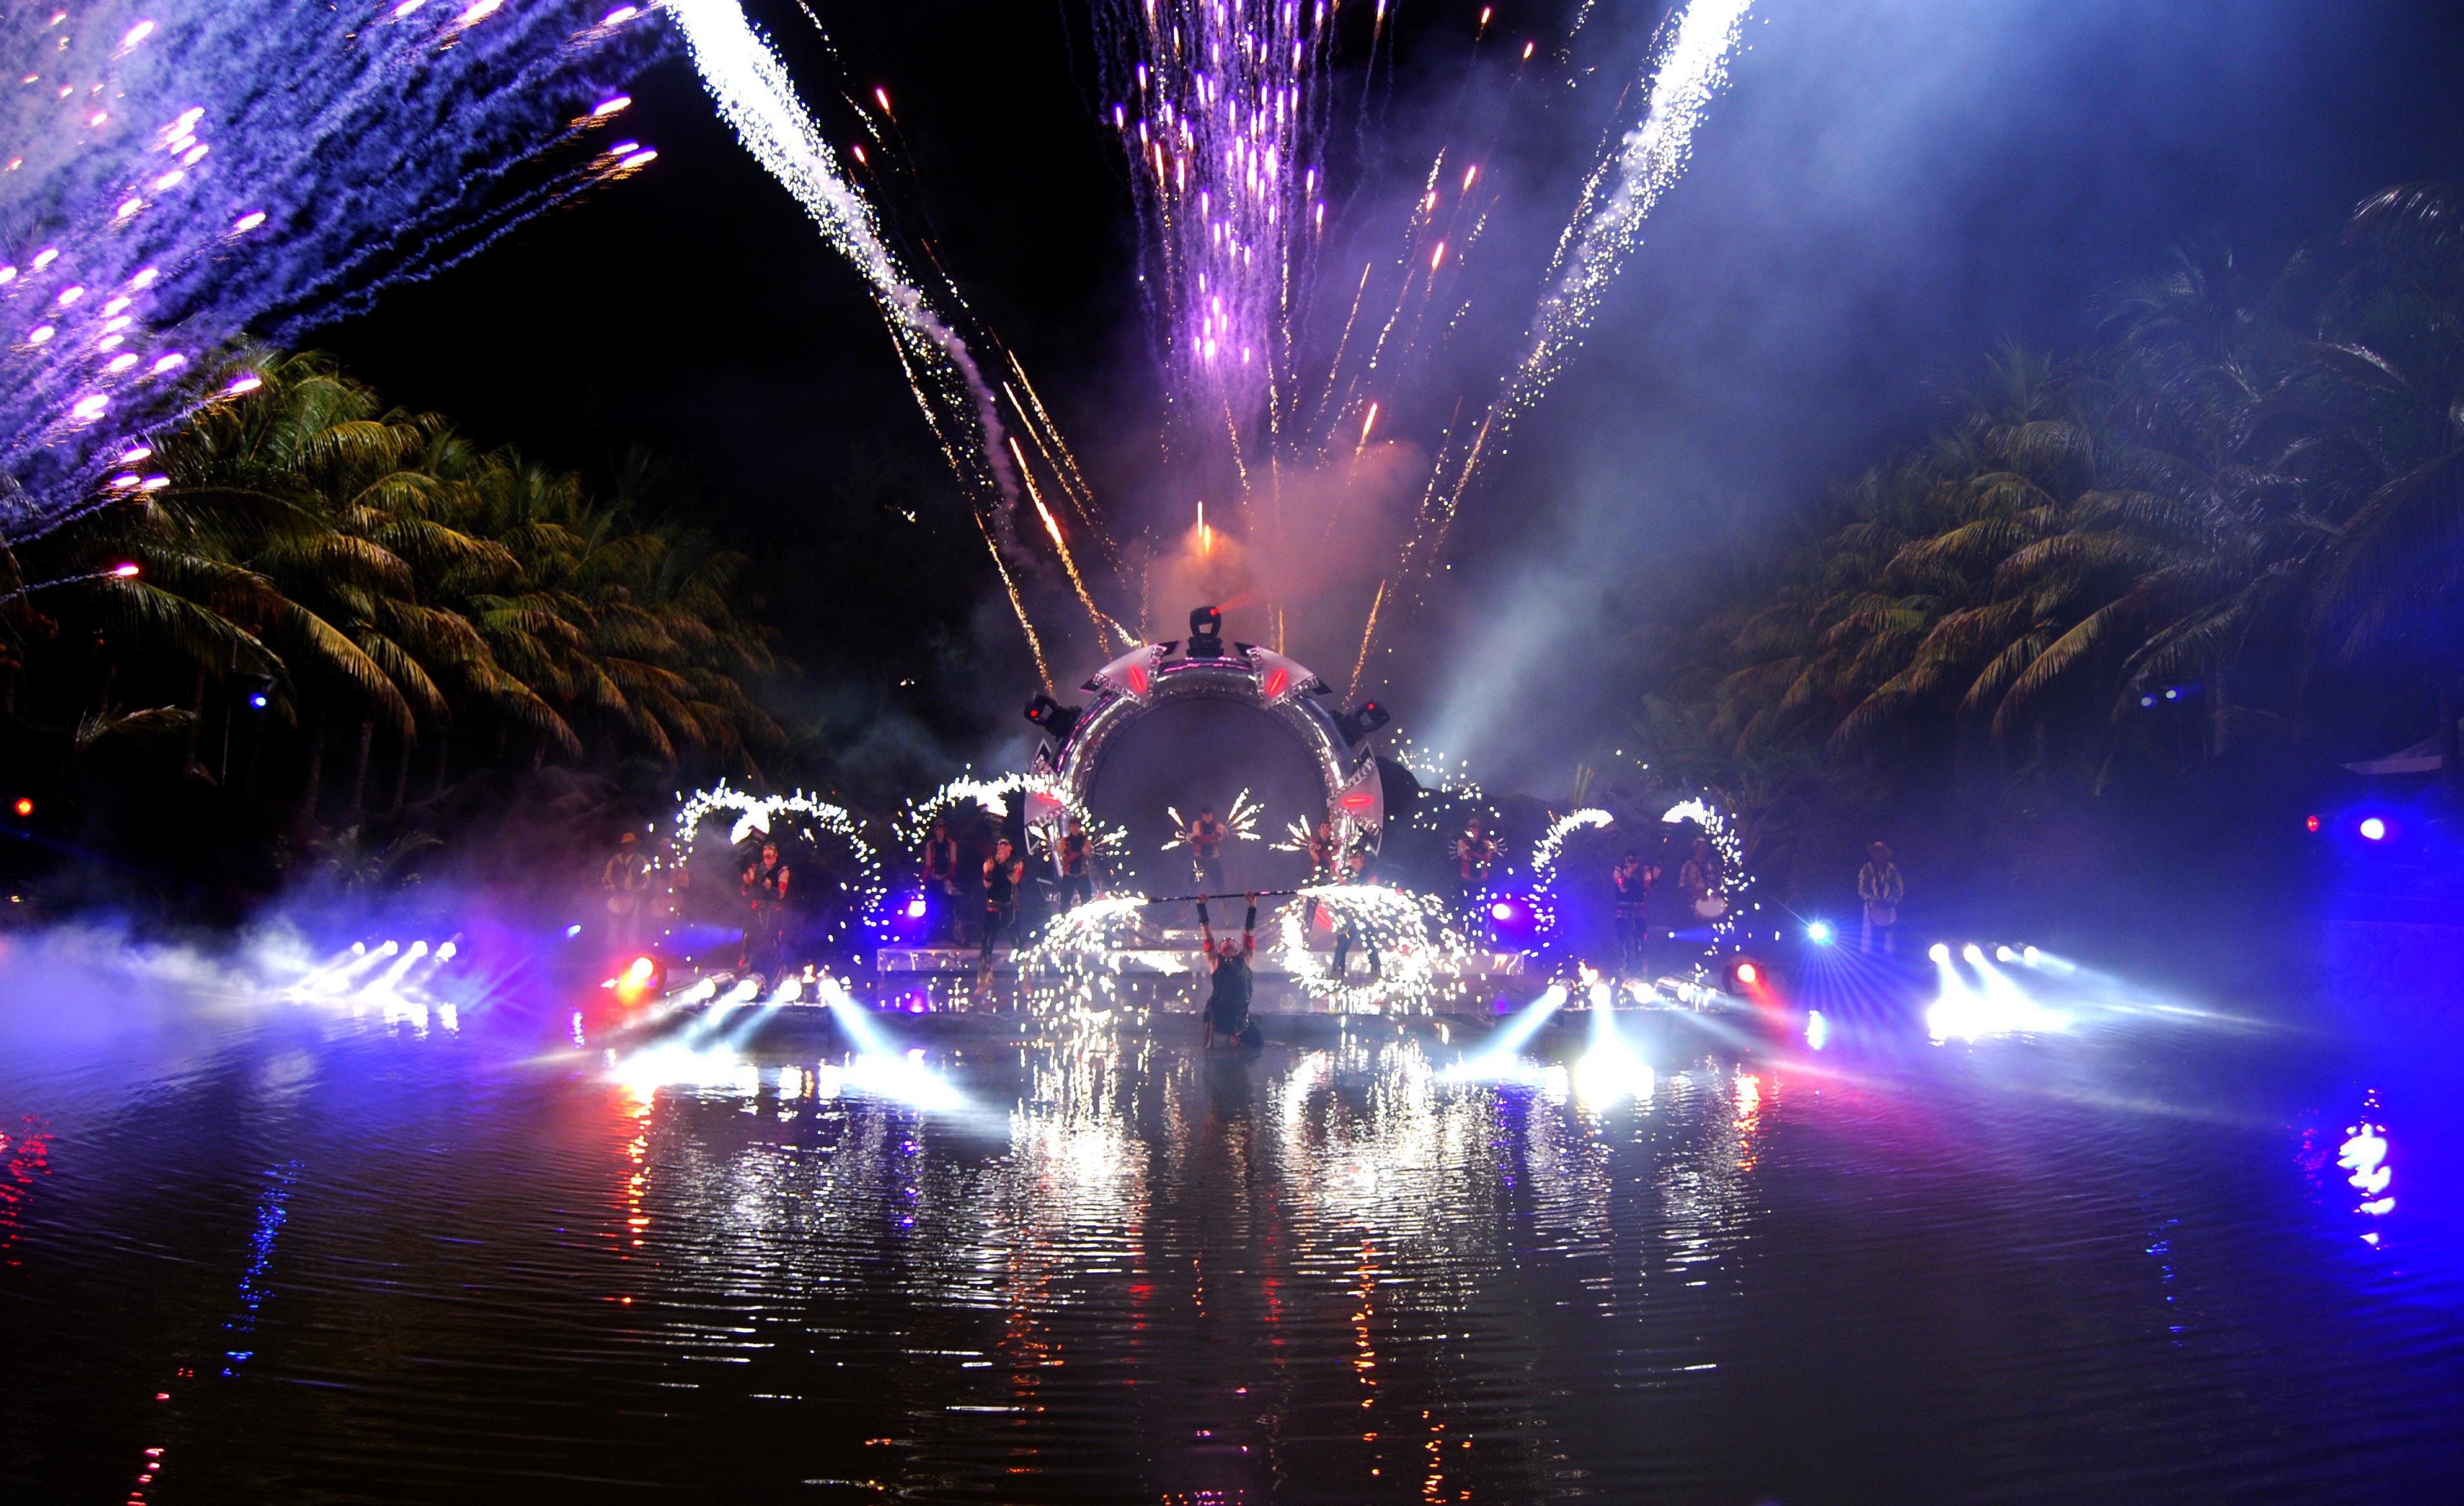 Laser Light Stage Show - Streets United